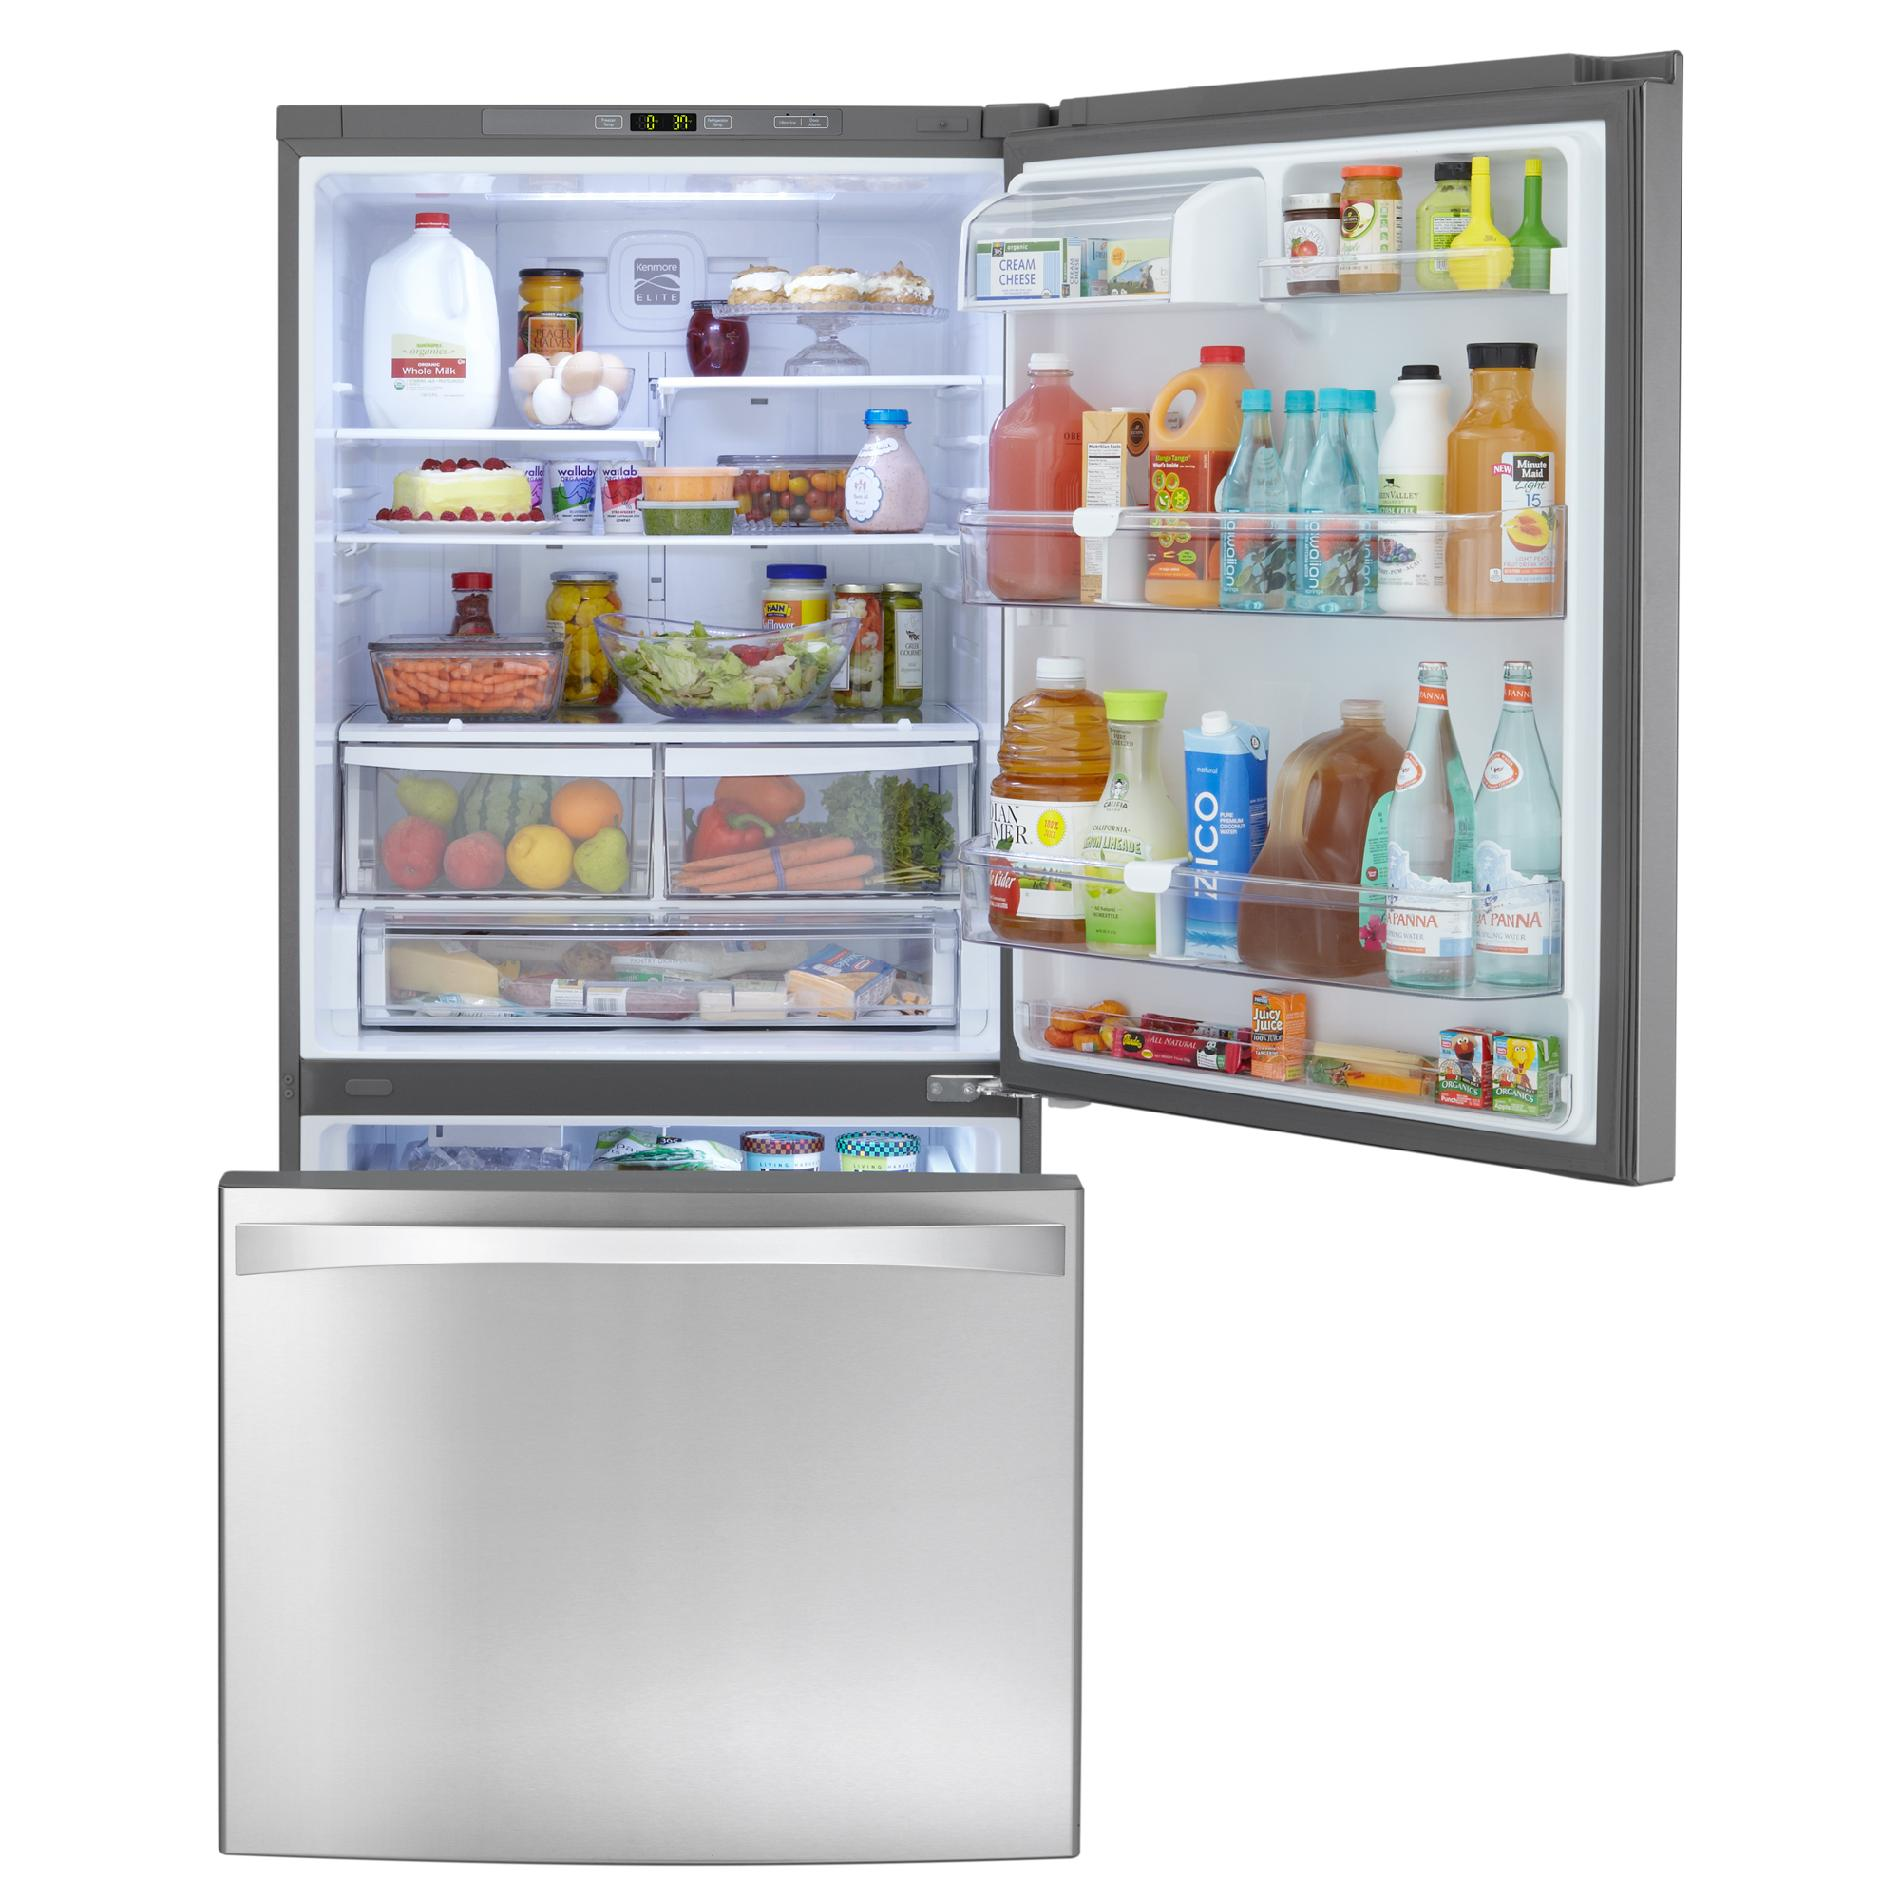 Kenmore Elite 79043 24.1 cu. ft. Bottom-Freezer Refrigerator—Stainless Steel